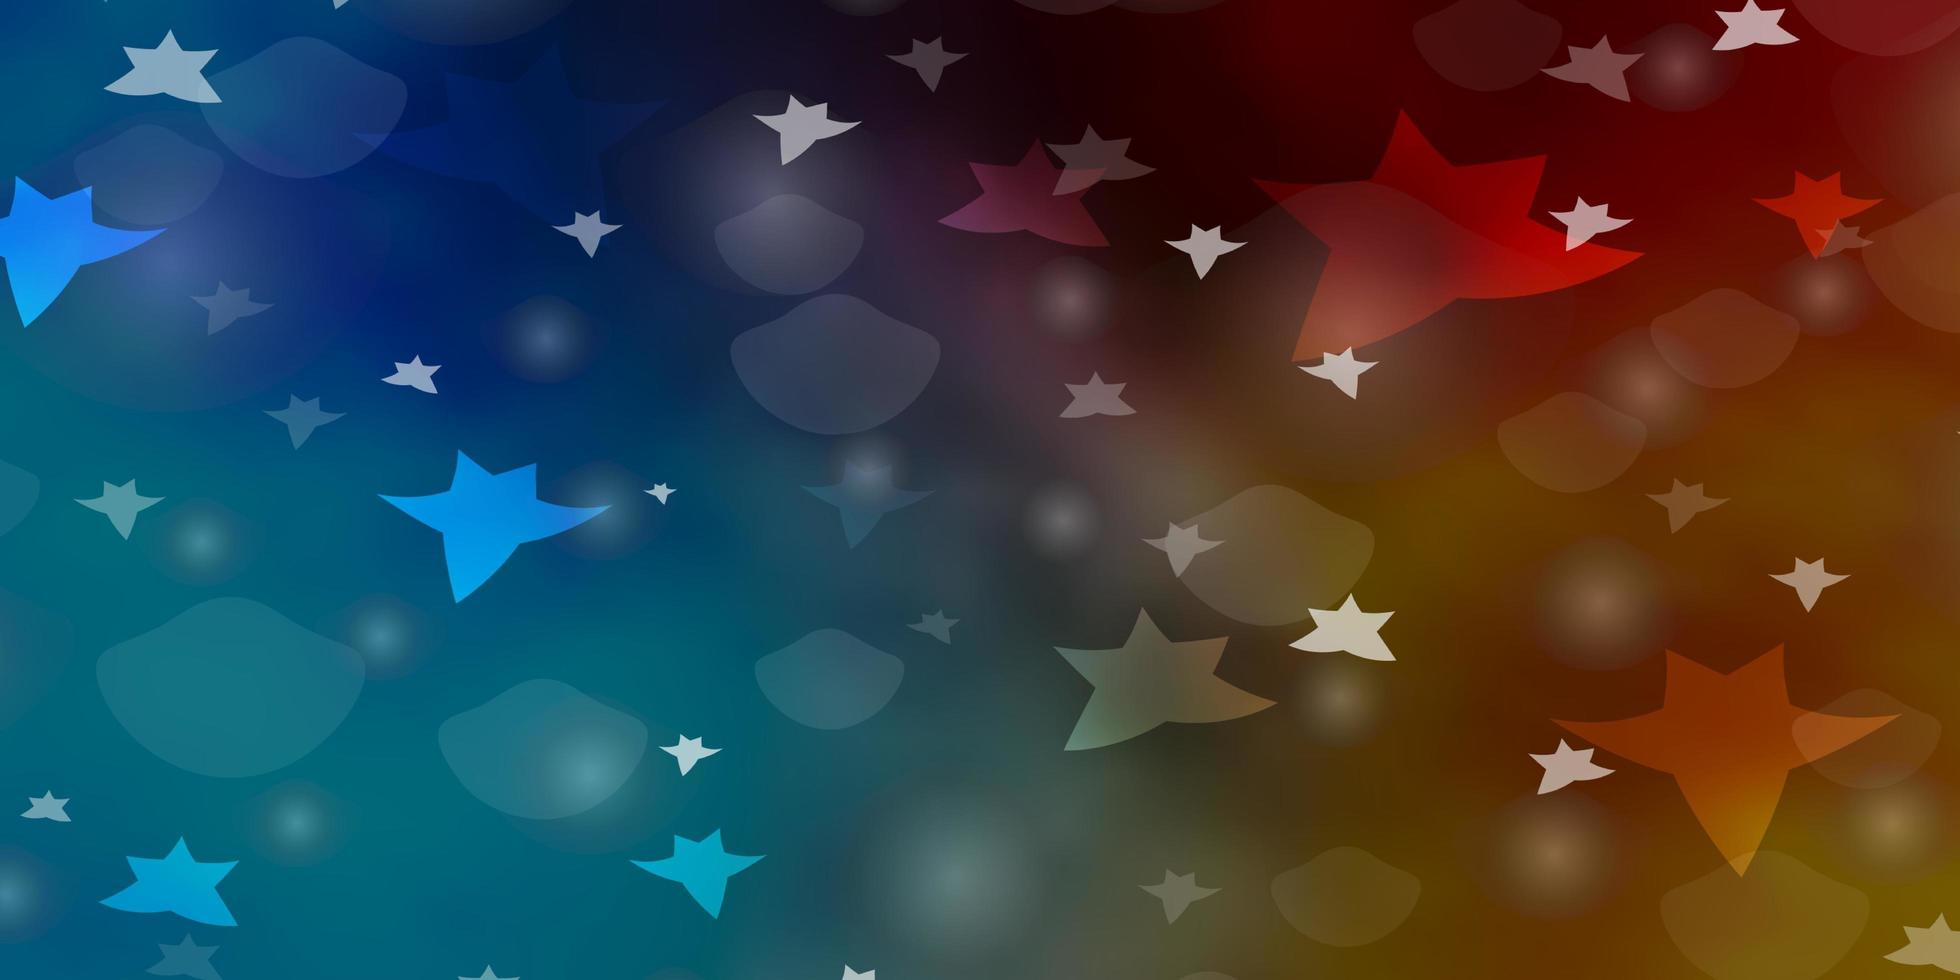 Light Blue, Yellow pattern with circles, stars. vector